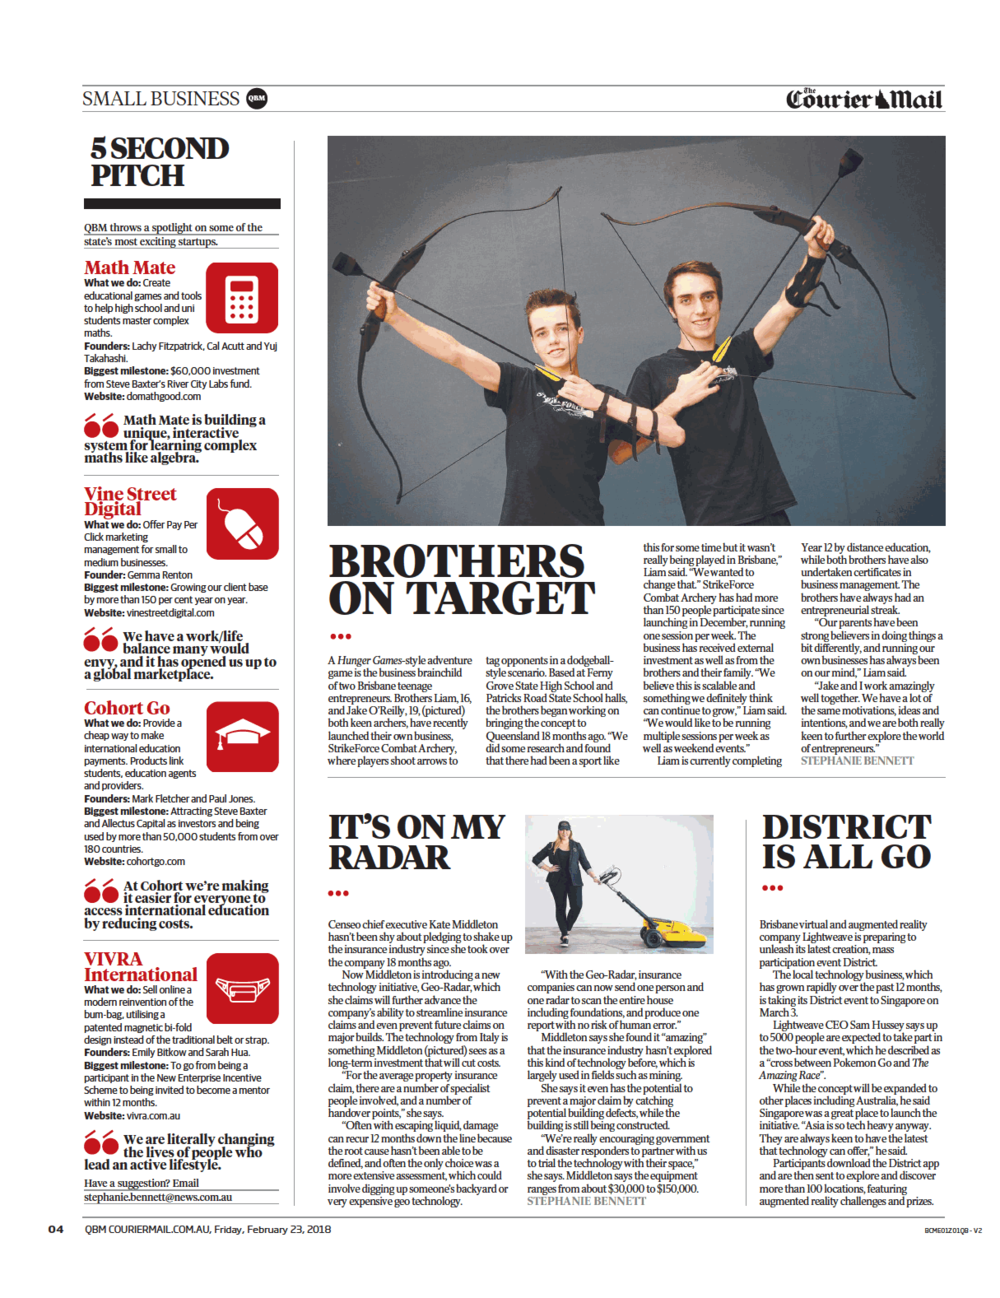 Math Mate in Courier Mail Queensland Business Monthly Magazine Fri 23 Feb 2018.png